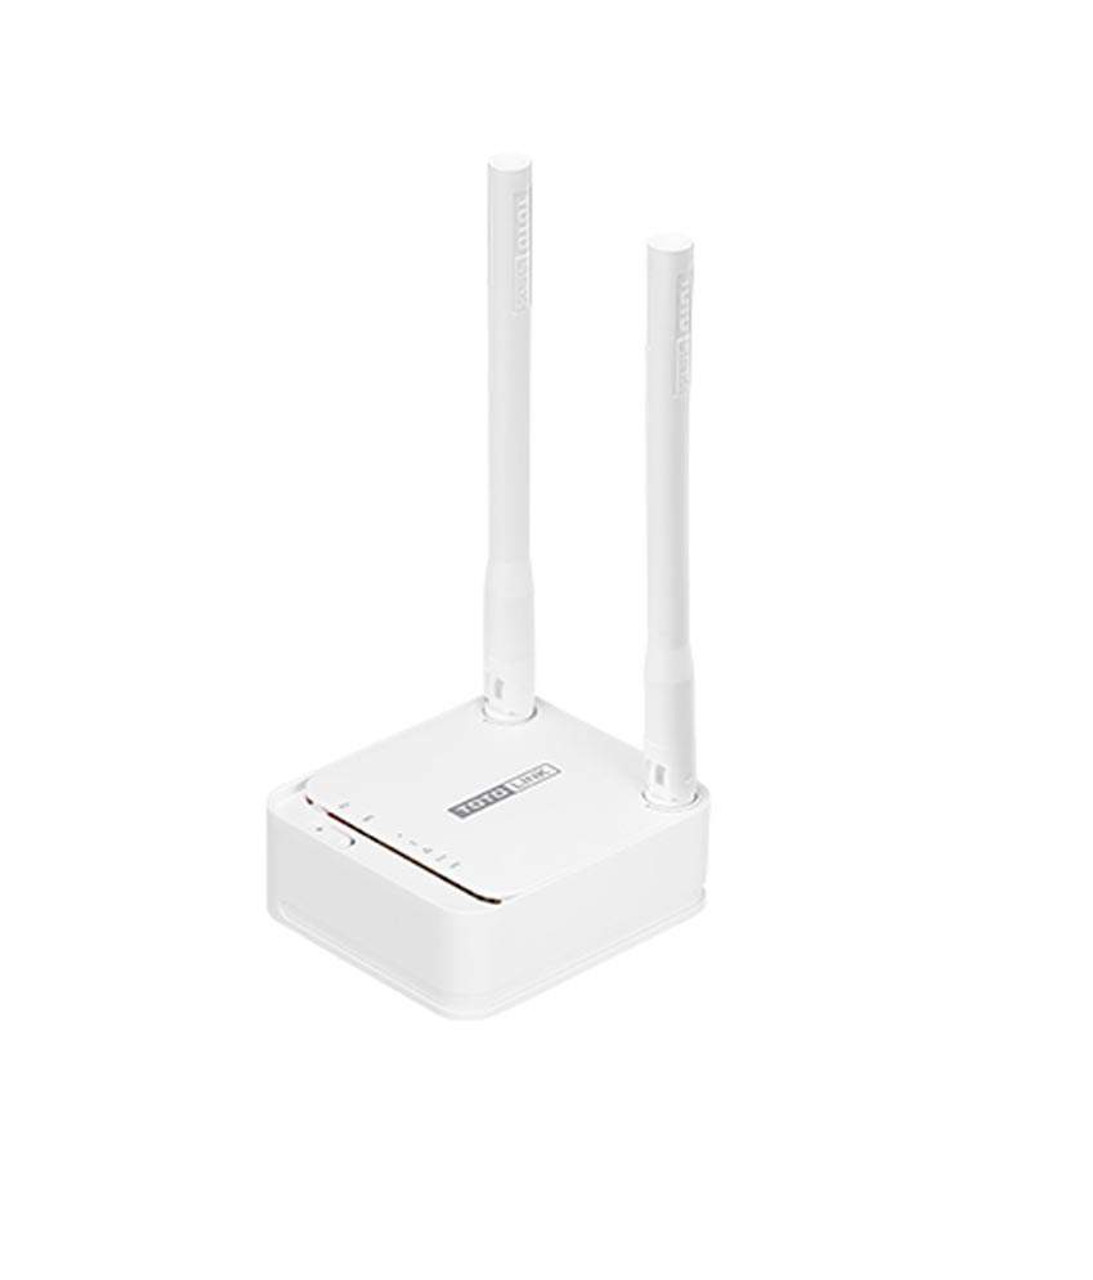 TOTOLINK N200RE 300Mps 2 Antenna Wireless N Router